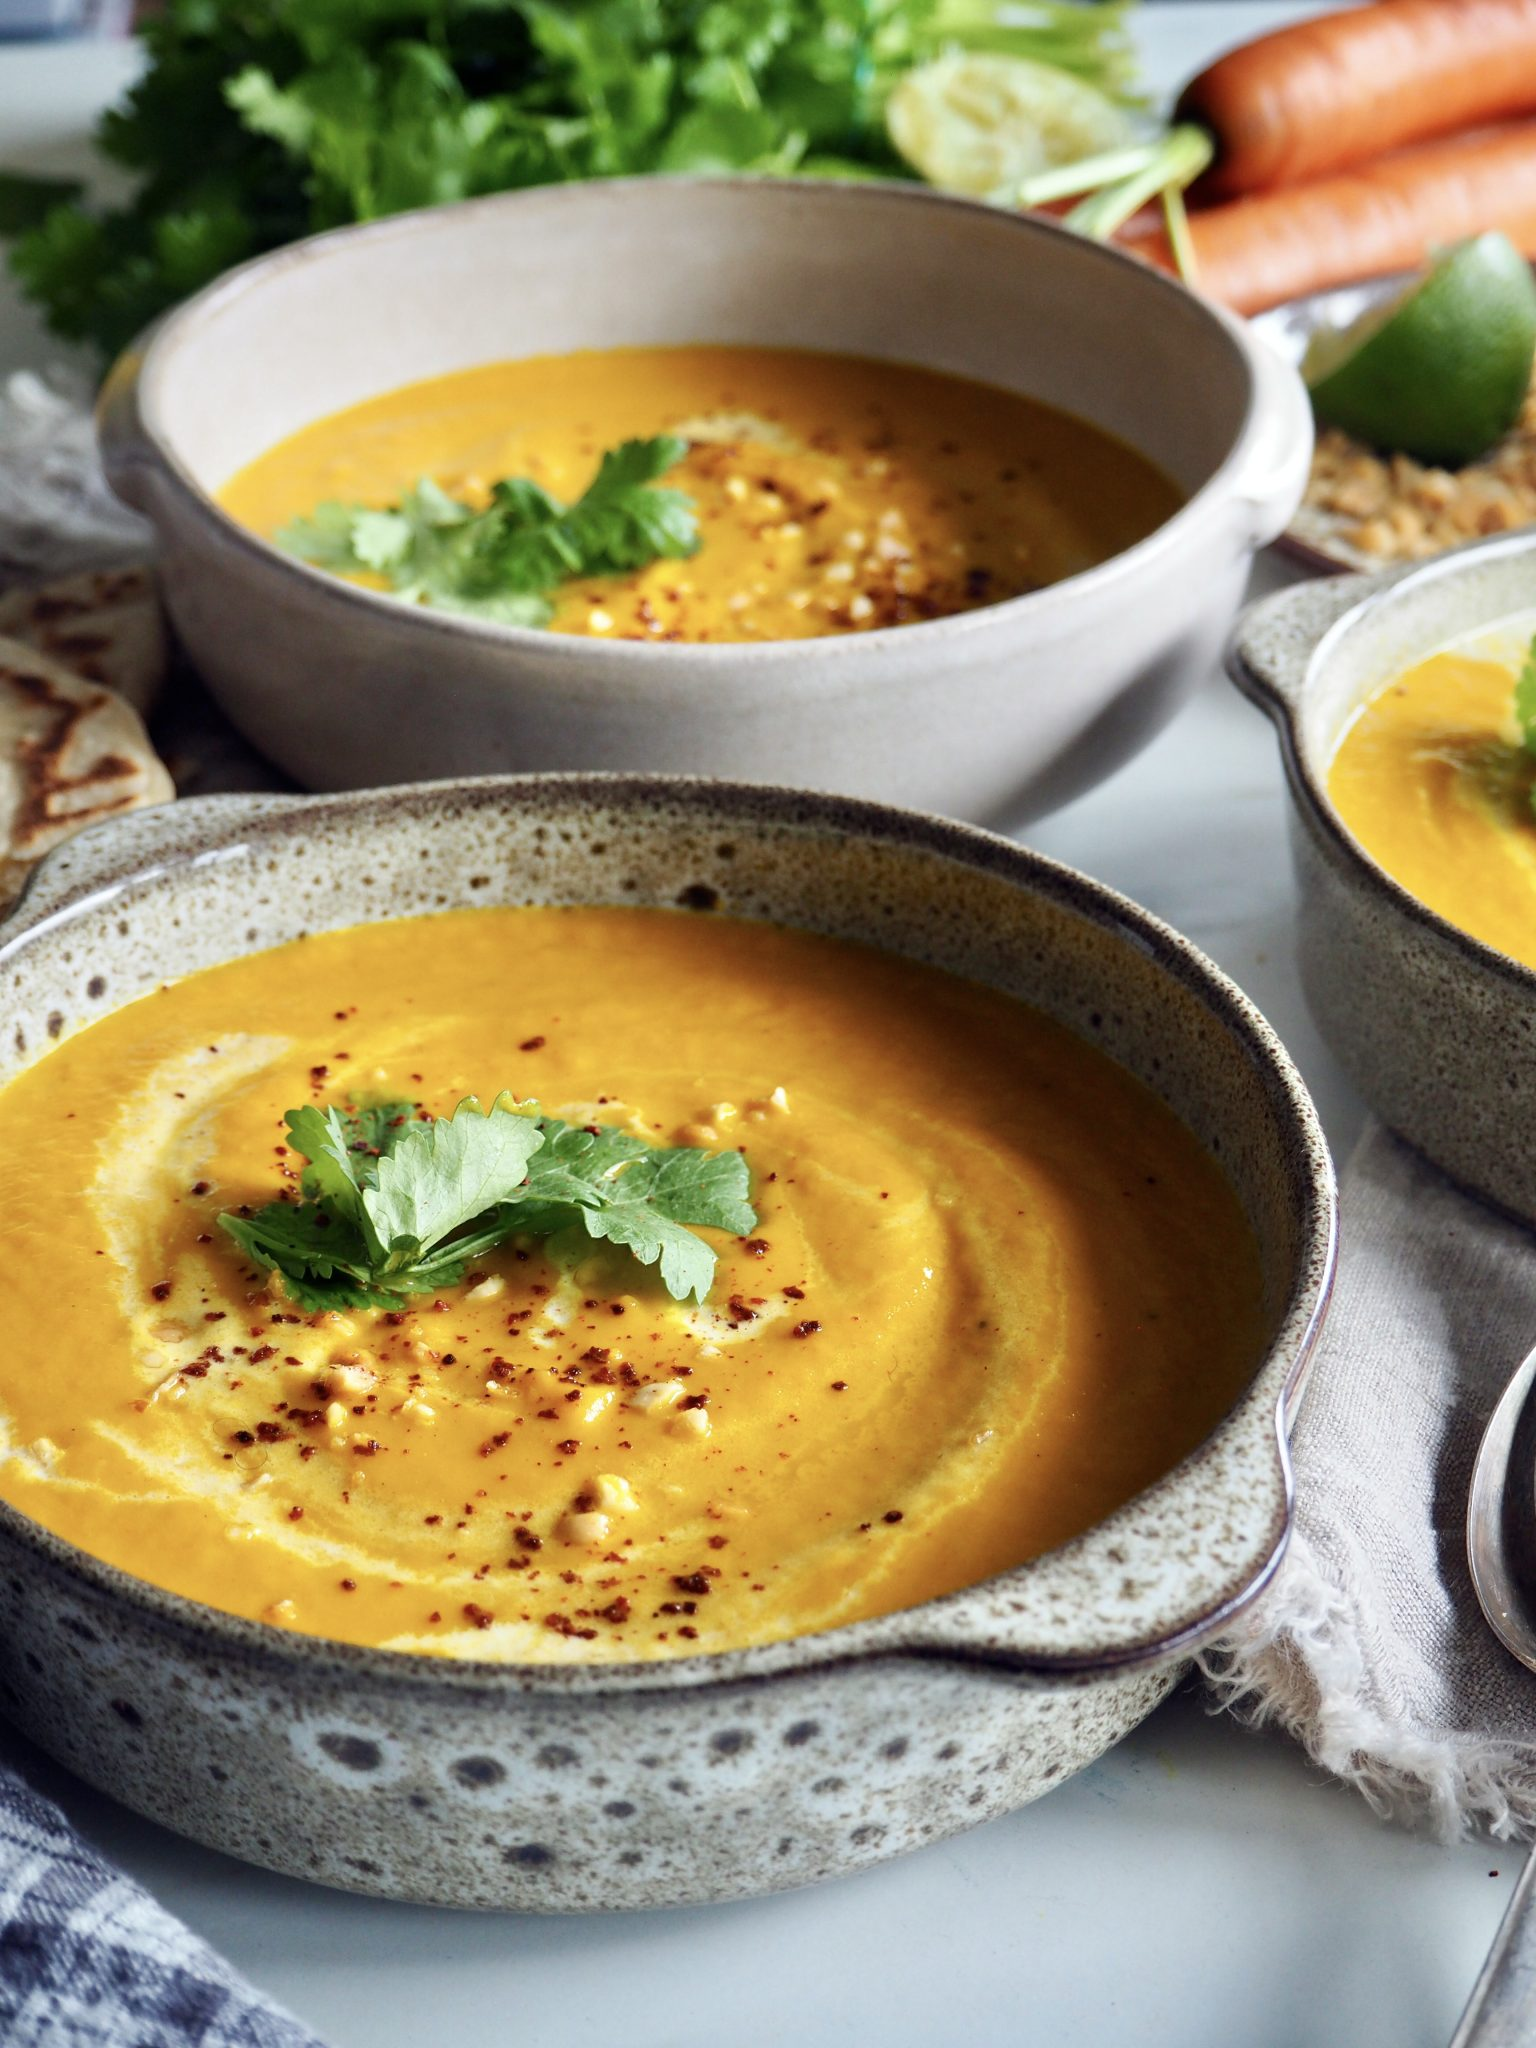 Spicy gulrotsuppe med eple